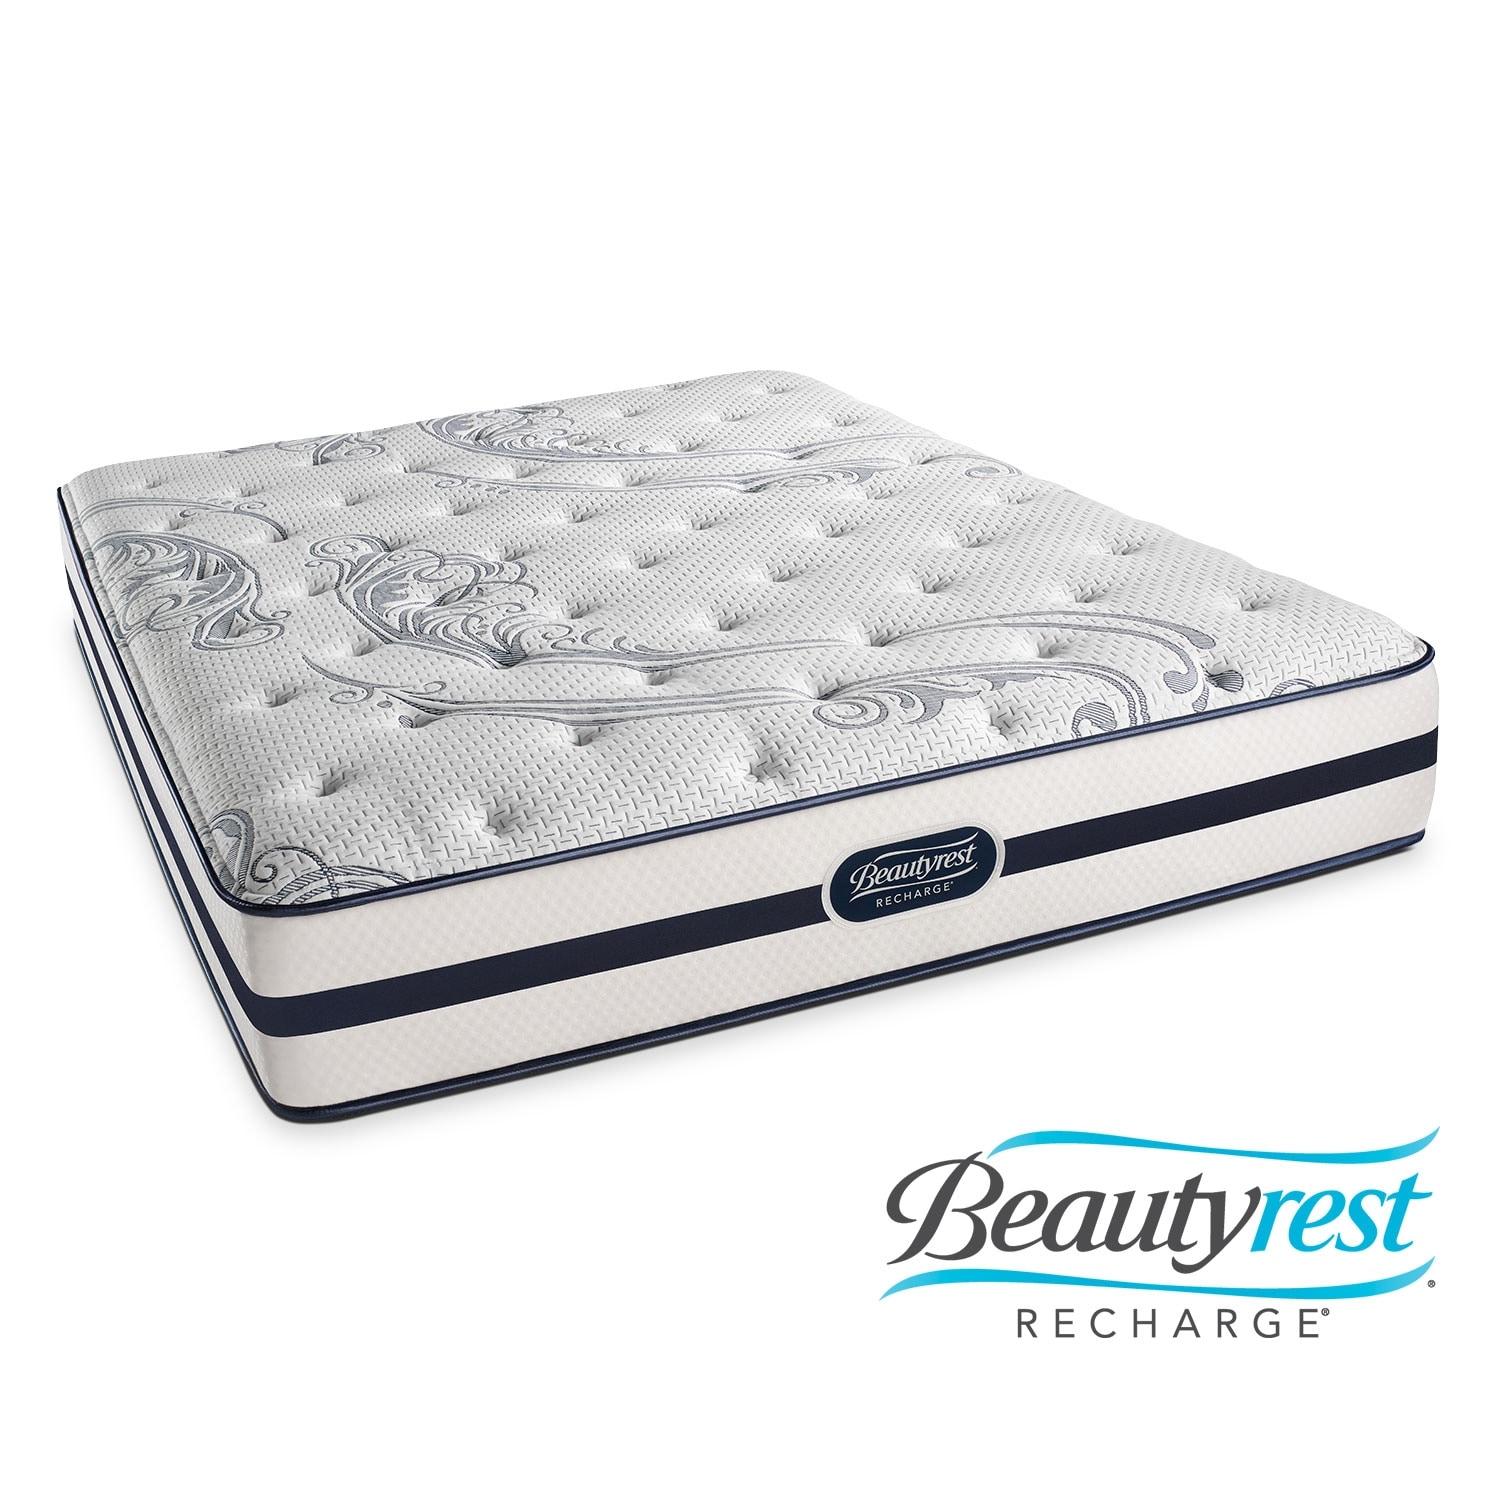 Mattresses and Bedding - Alisa Luxury Firm California King Mattress